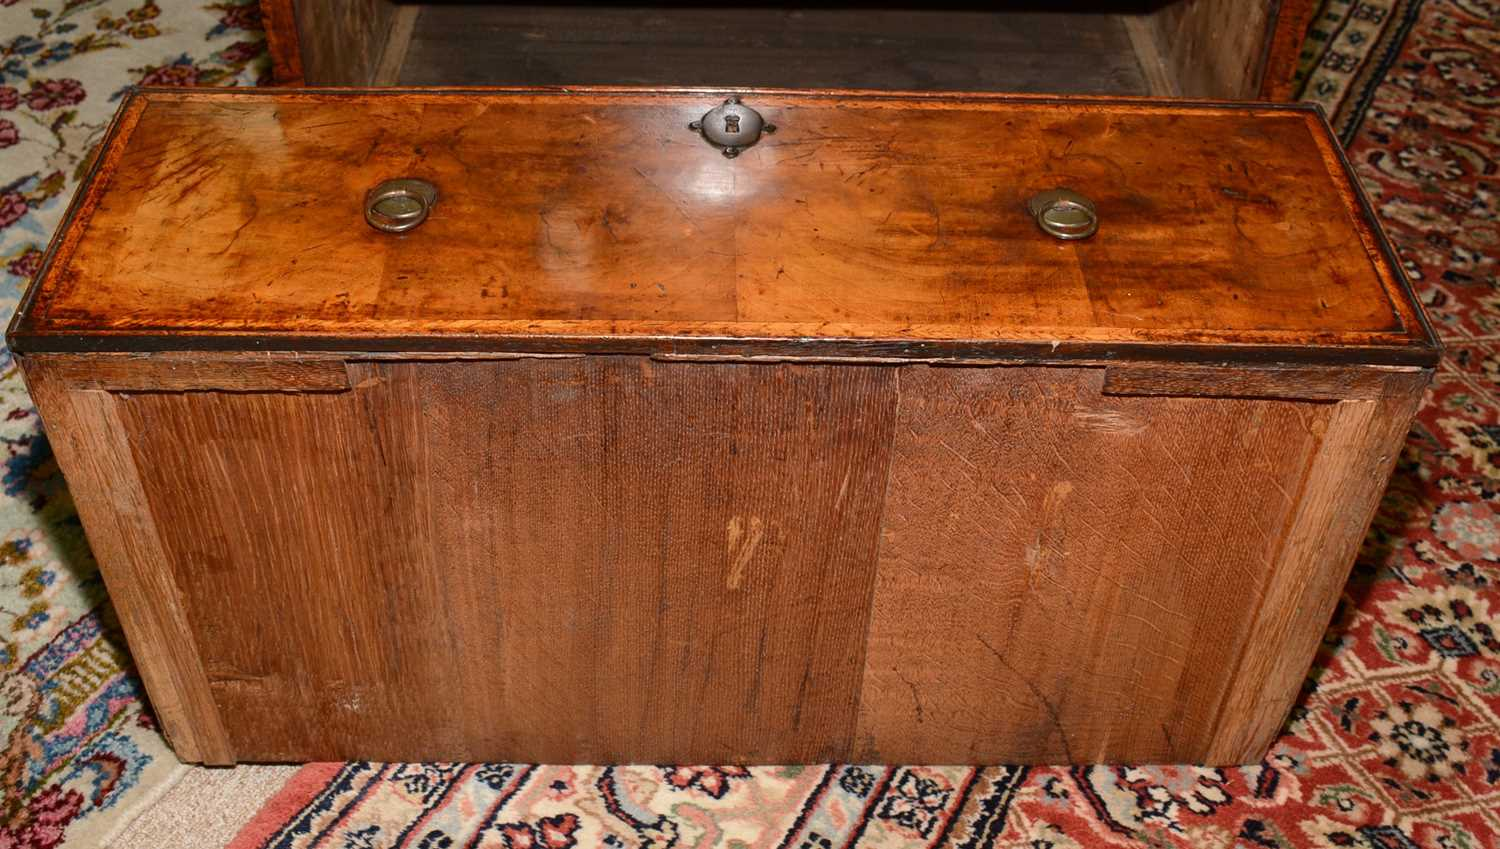 Early 18th Century walnut bachelors chest - Image 27 of 39